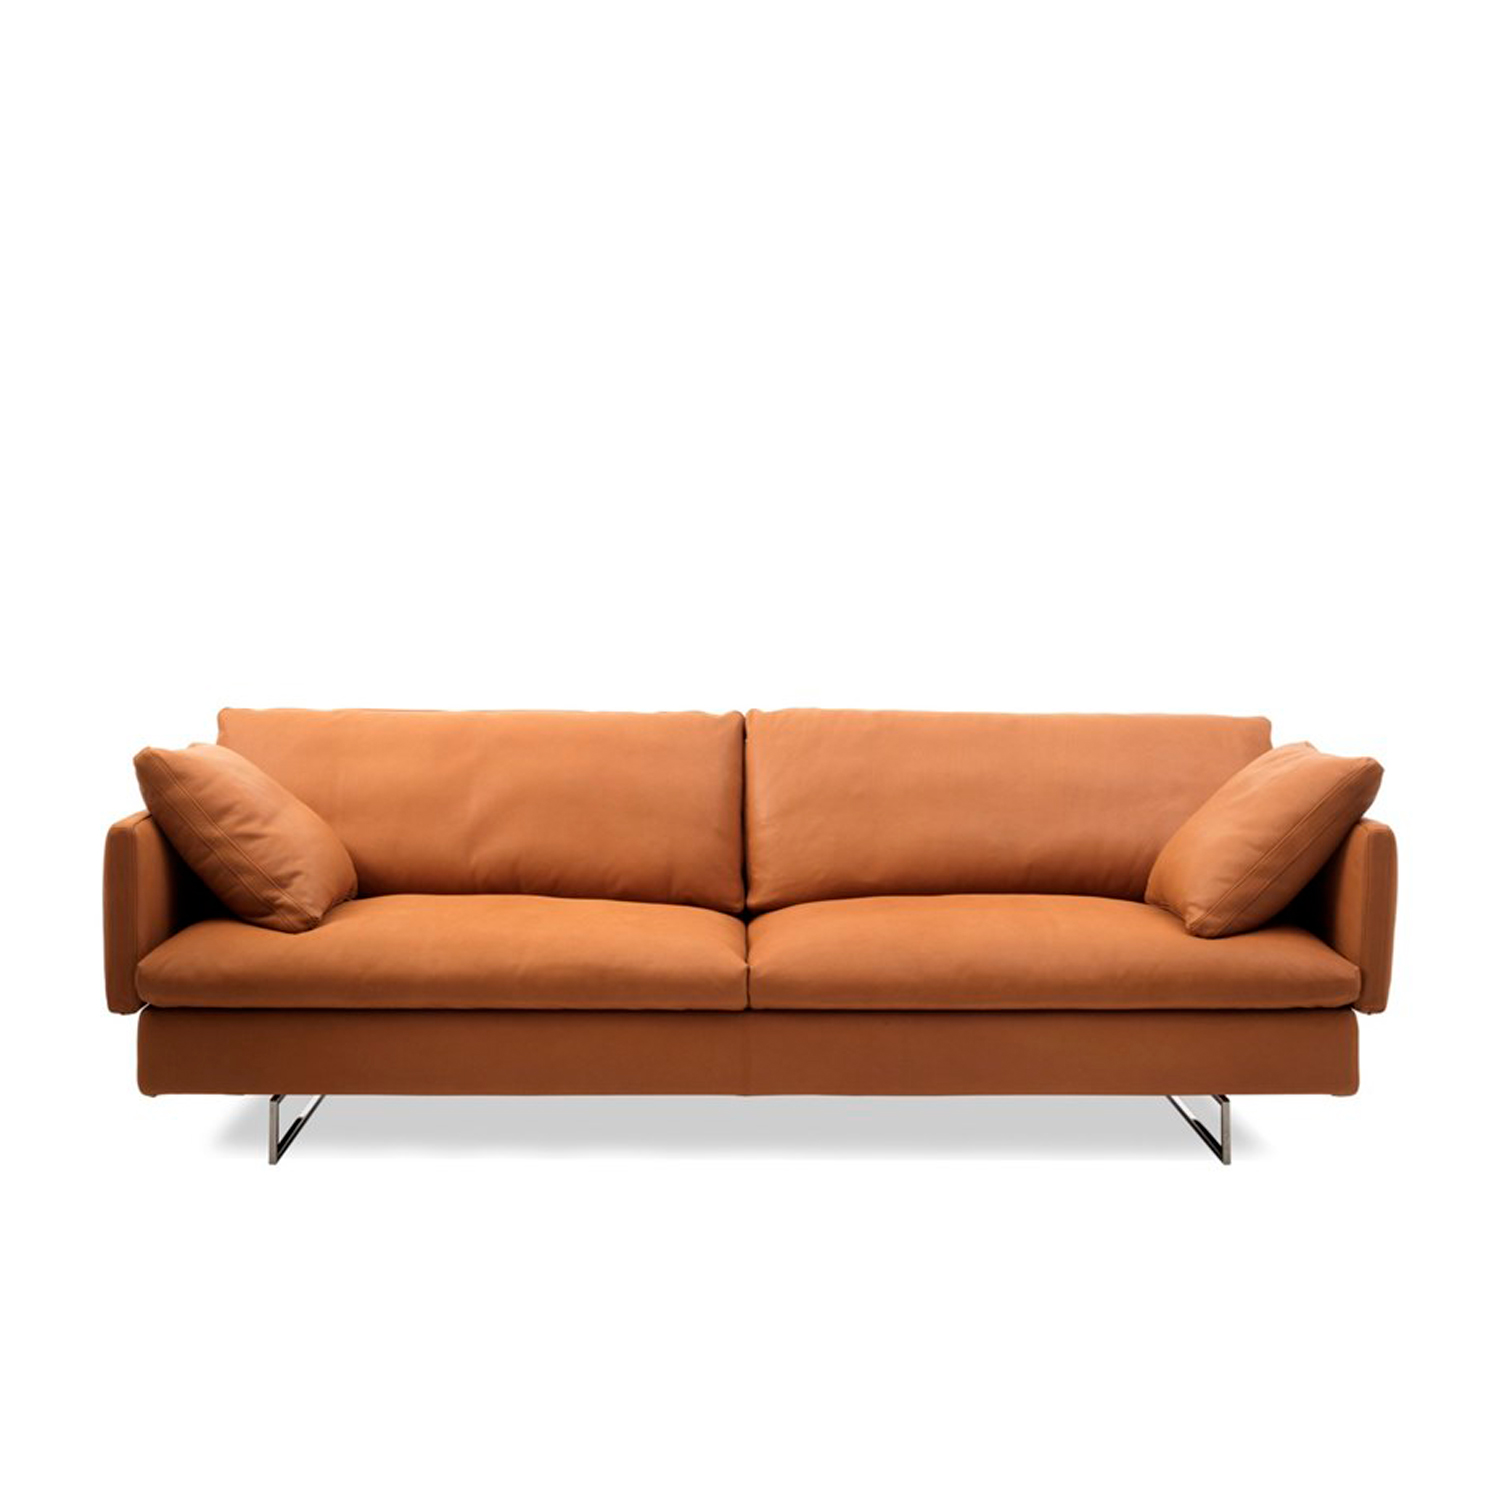 Voyage Two Seater Sofa - This sofa offers clean lines and a unique flexible design that gives a feeling of momentum towards a larger journey. The upholstery options are essential, contemporary and eclectic. Voyage can be assembled and re-assembled with simple configurations adapting to any living scenario. This seating system reinforces Saba's ethos for interpreting the value of flexibility: from the slender backrests that allow upmost comfort with minimal volume to the multiple configurations they enable. Voyage can be configured into two sofas or one sofa in vis a vis positioning, or into a chaise lounge formation. It's available in two variations - with methacrylate or chrome finished metal feet.  Additional removable cover is available, please enquire for prices.  Materials Structure in wood padded with polyurethane foam covered with velfodera on a polyester fiber coated backing 150gr/sqm. The back panels are in plywood padded with variable-density polyurethane foam and covered with velfodera 100gr/sqm. Feet 10 cm high in transparent methacrylate with rectangular section or in metal with black nickel finishing. The seat cushions are made with variable density polyurethane, covered fine velvet coupled with polyester fiber 280gr/sqm. The back and armrest cushions are in siliconised microfiber unraveled 100% polyester quilted into sections and covered with 100% white cotton fabric. The roll armrest is filled with polyurethane foam and covered with cotton fodera coupled with polyester fiber 380gr/sqm. | Matter of Stuff